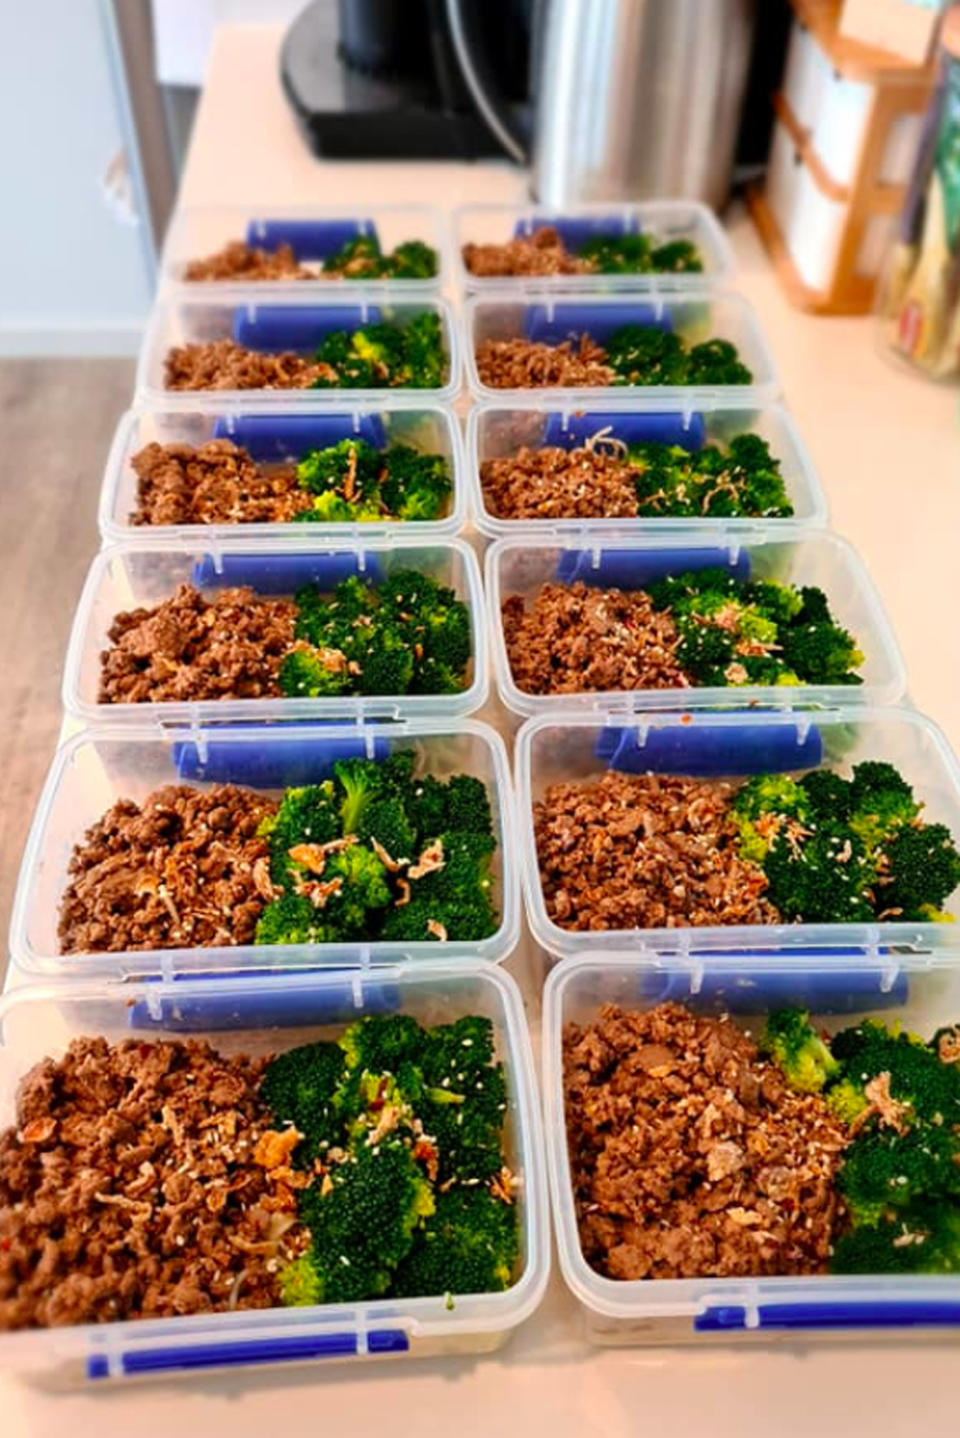 Meal prepping for weight loss